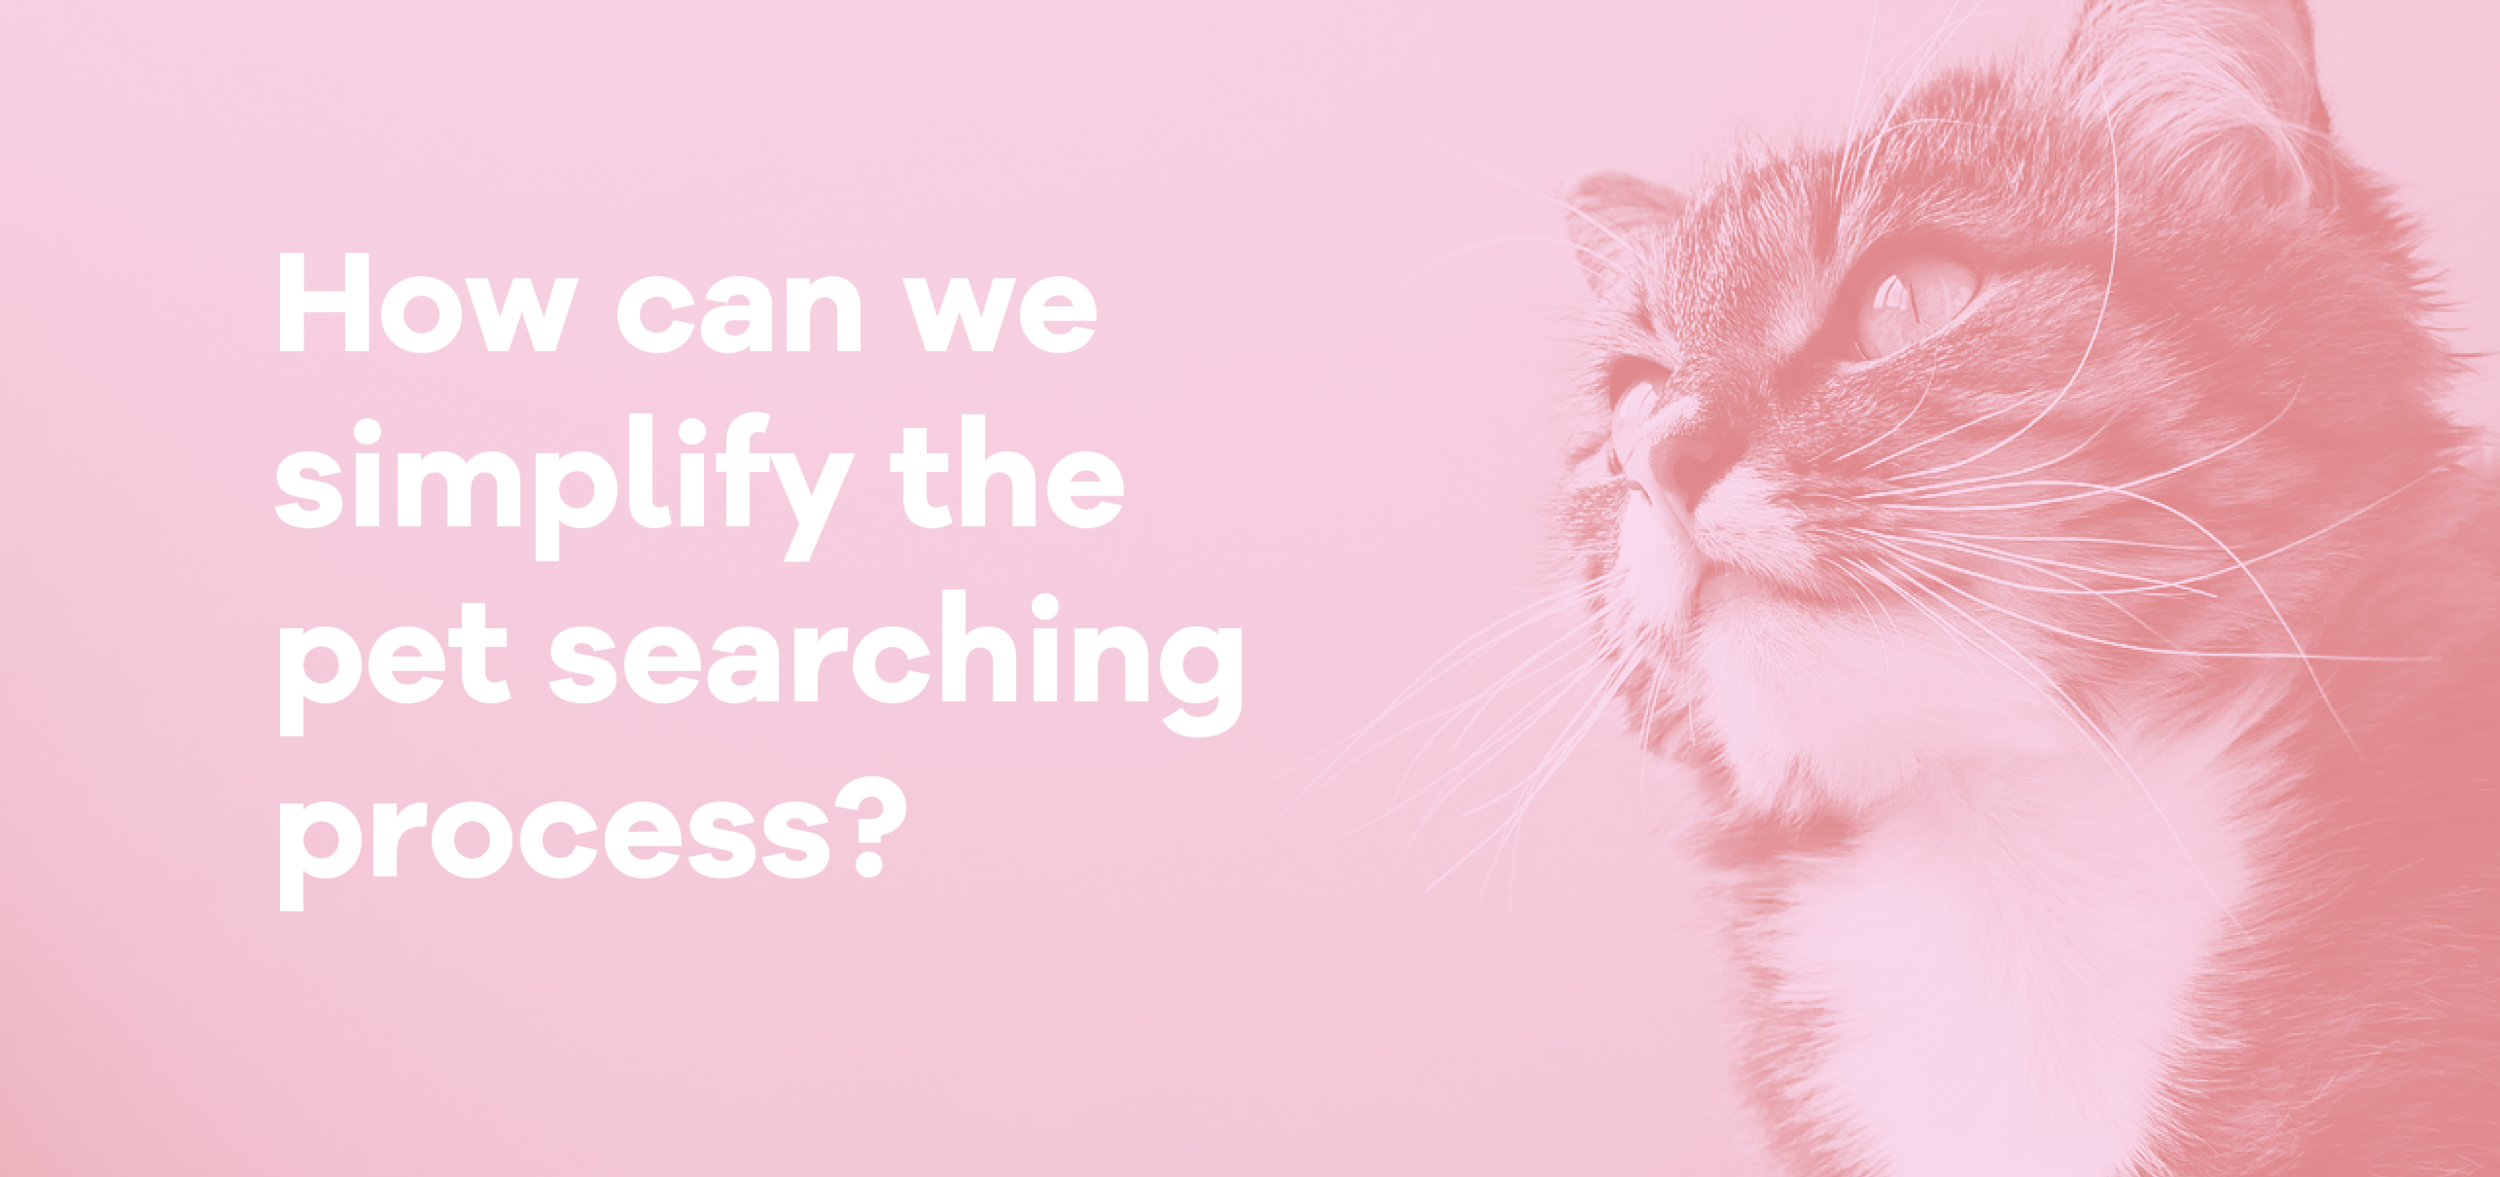 kitty questionpsd.png